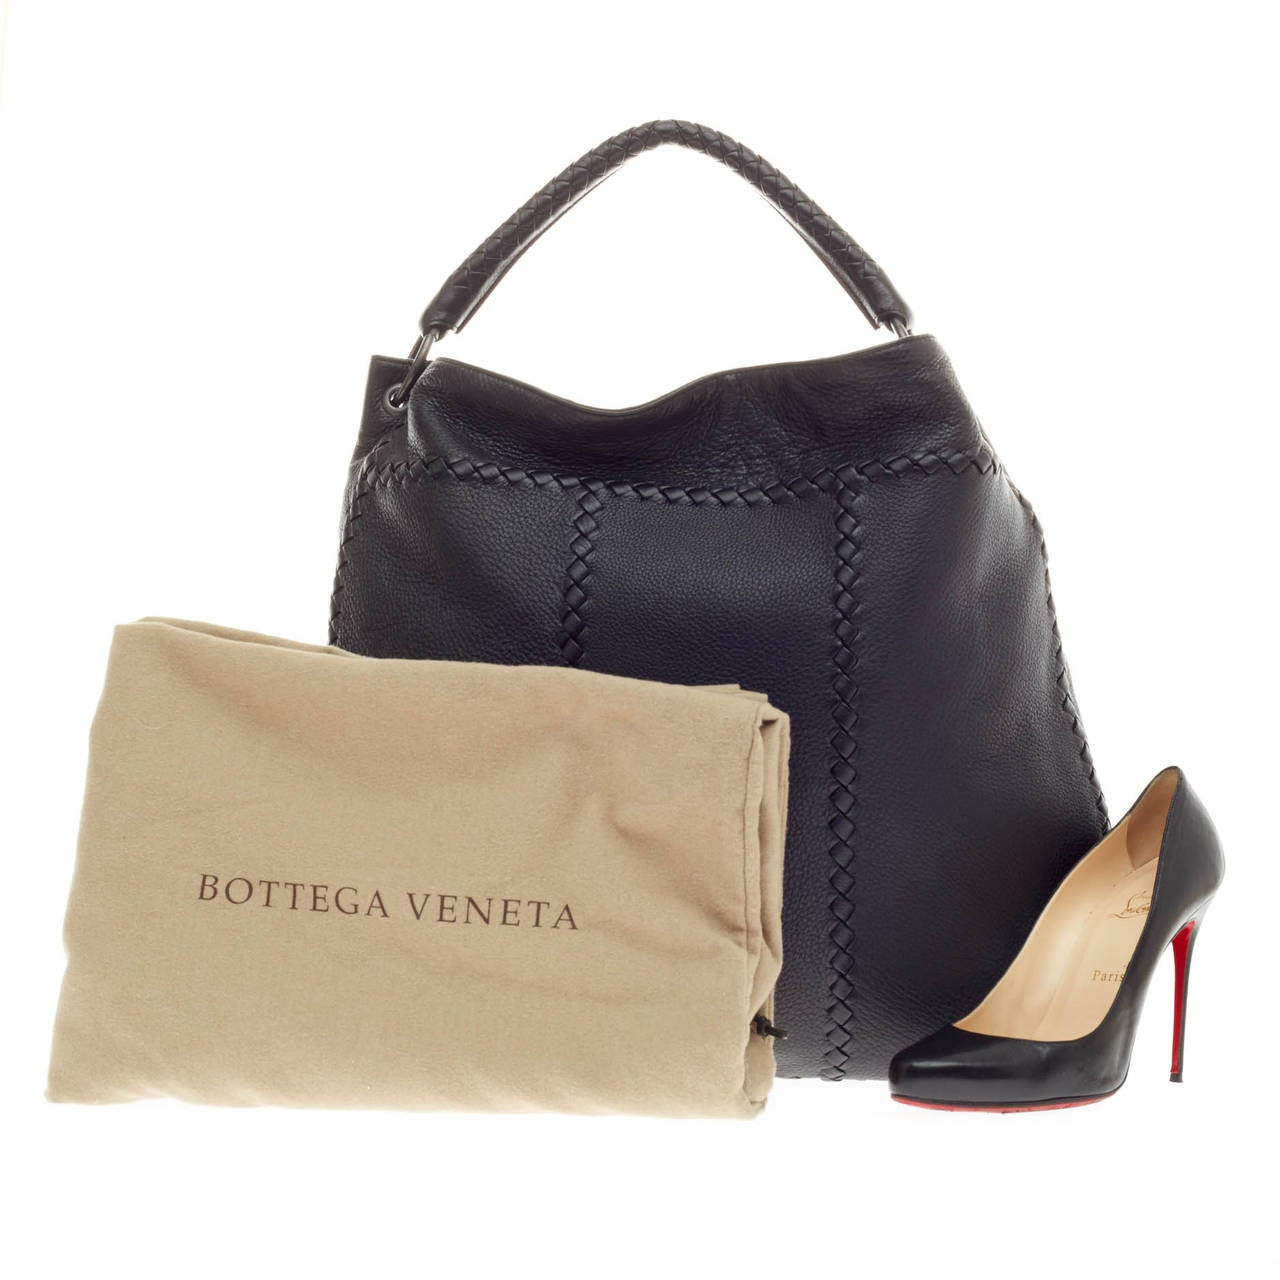 dbbcbe8b347b This authentic Bottega Veneta Hobo with Rings Leather with Intrecciato  Detail Large is an elegant